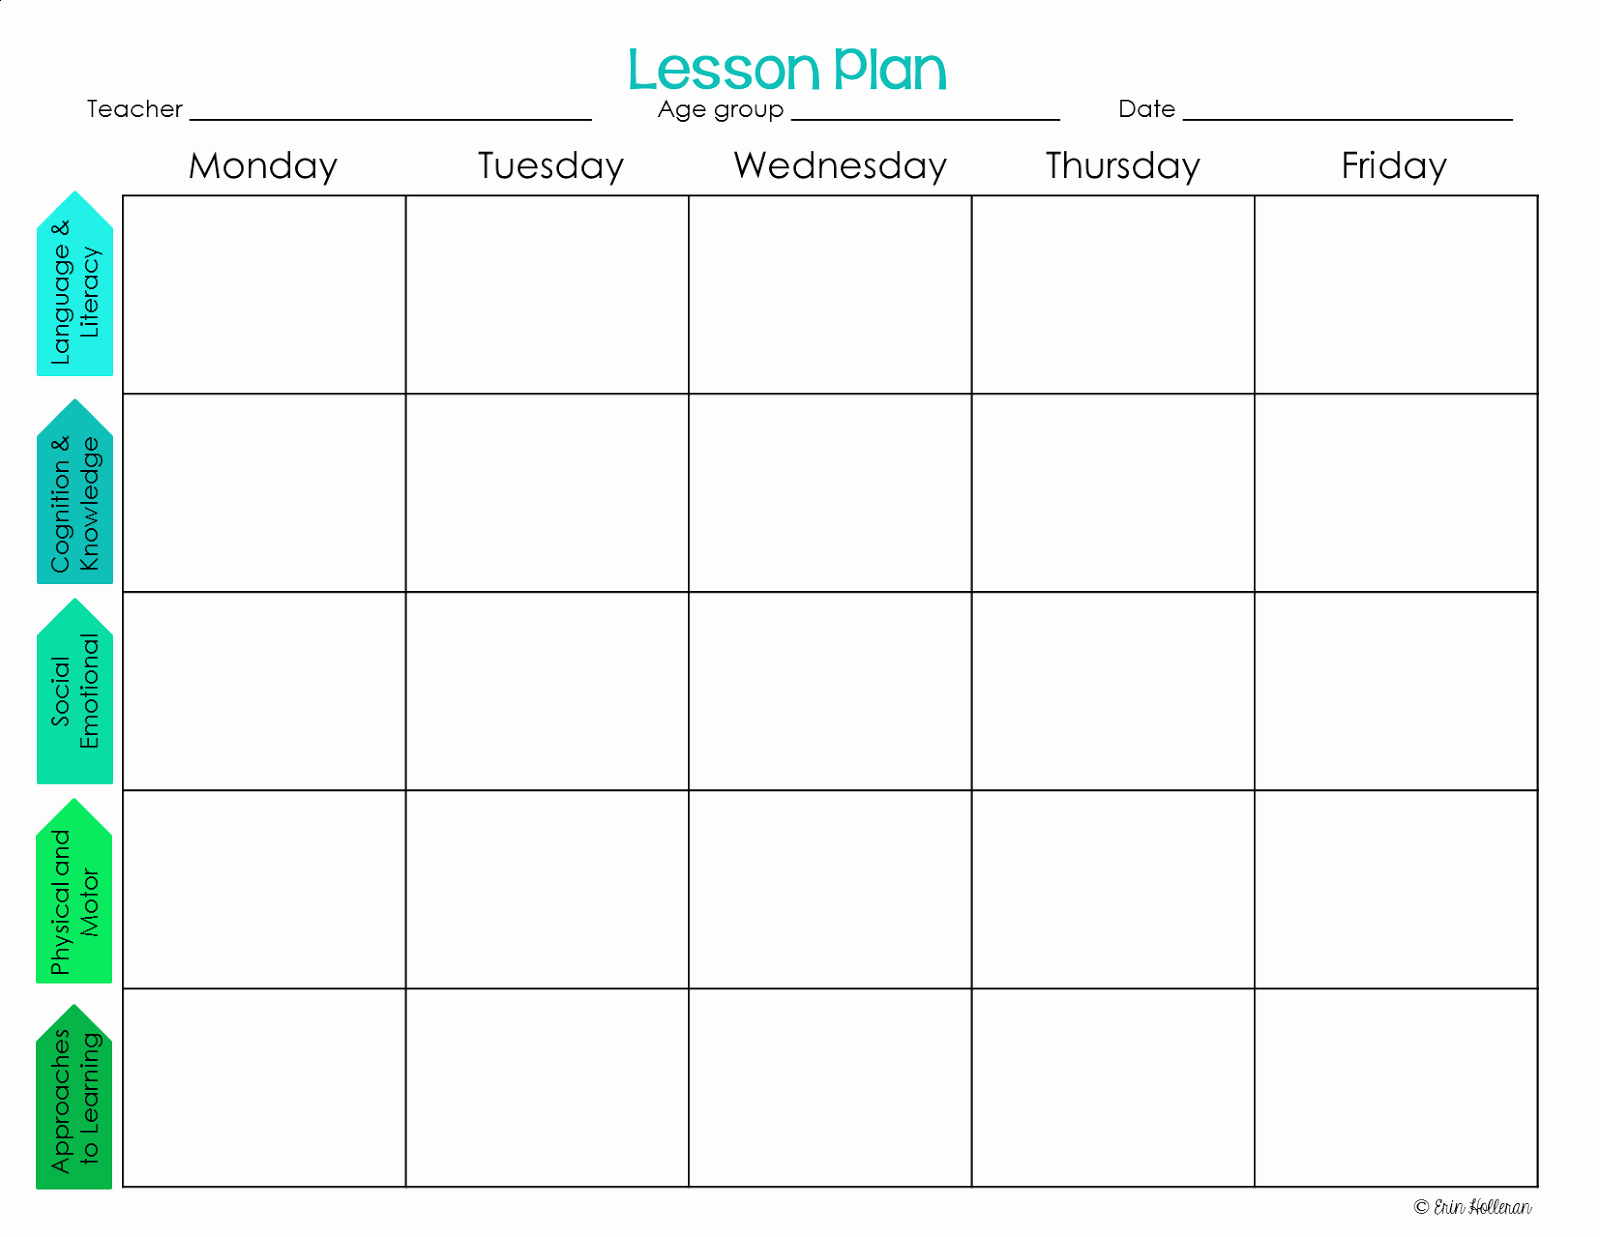 Toddler Lesson Plan Template Unique Preschool Ponderings Make Your Lesson Plans Work for You